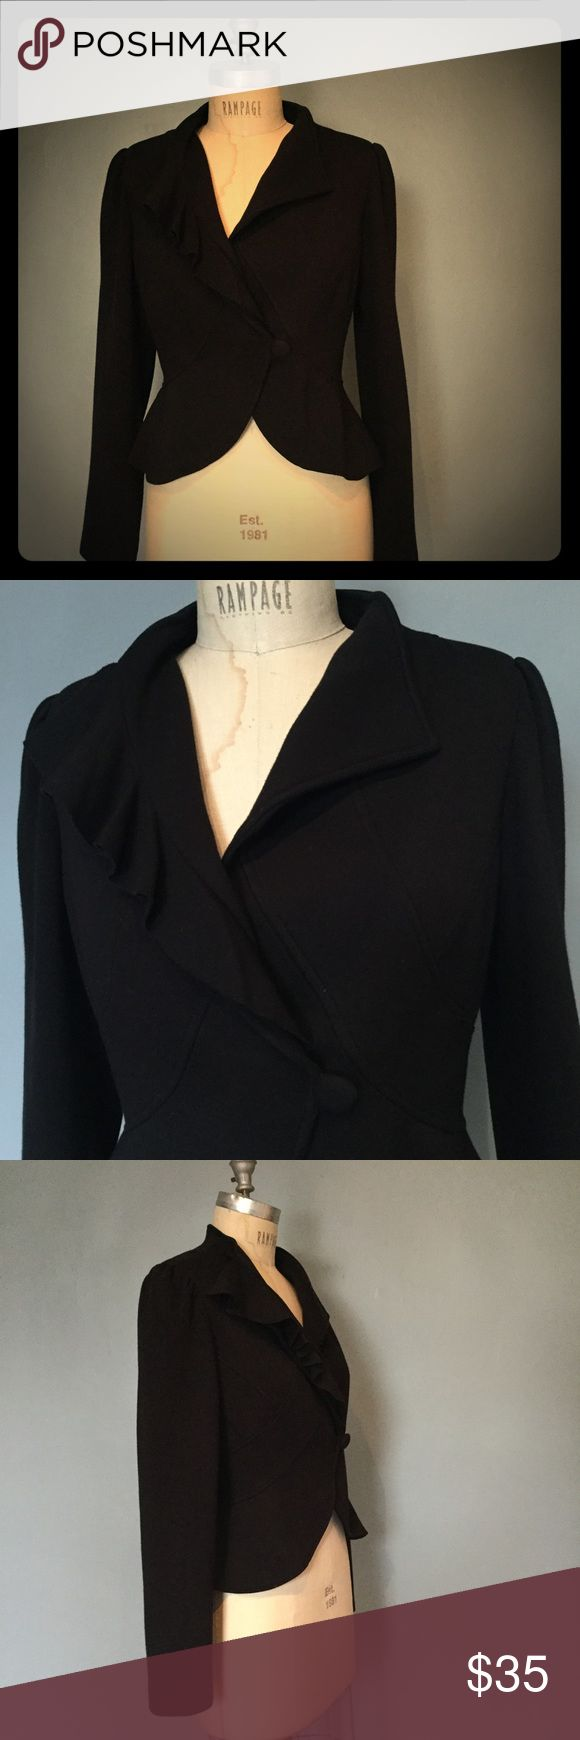 Black blazer with ruffle detail I.N.C. Modern vintage inspired blazer  with a wrap front, ruffled collar & slight peplum detail. Sophisticated & feminine. I've paired this with skirts, trousers, & denim. Beautiful silhouette! INC International Concepts Jackets & Coats Blazers